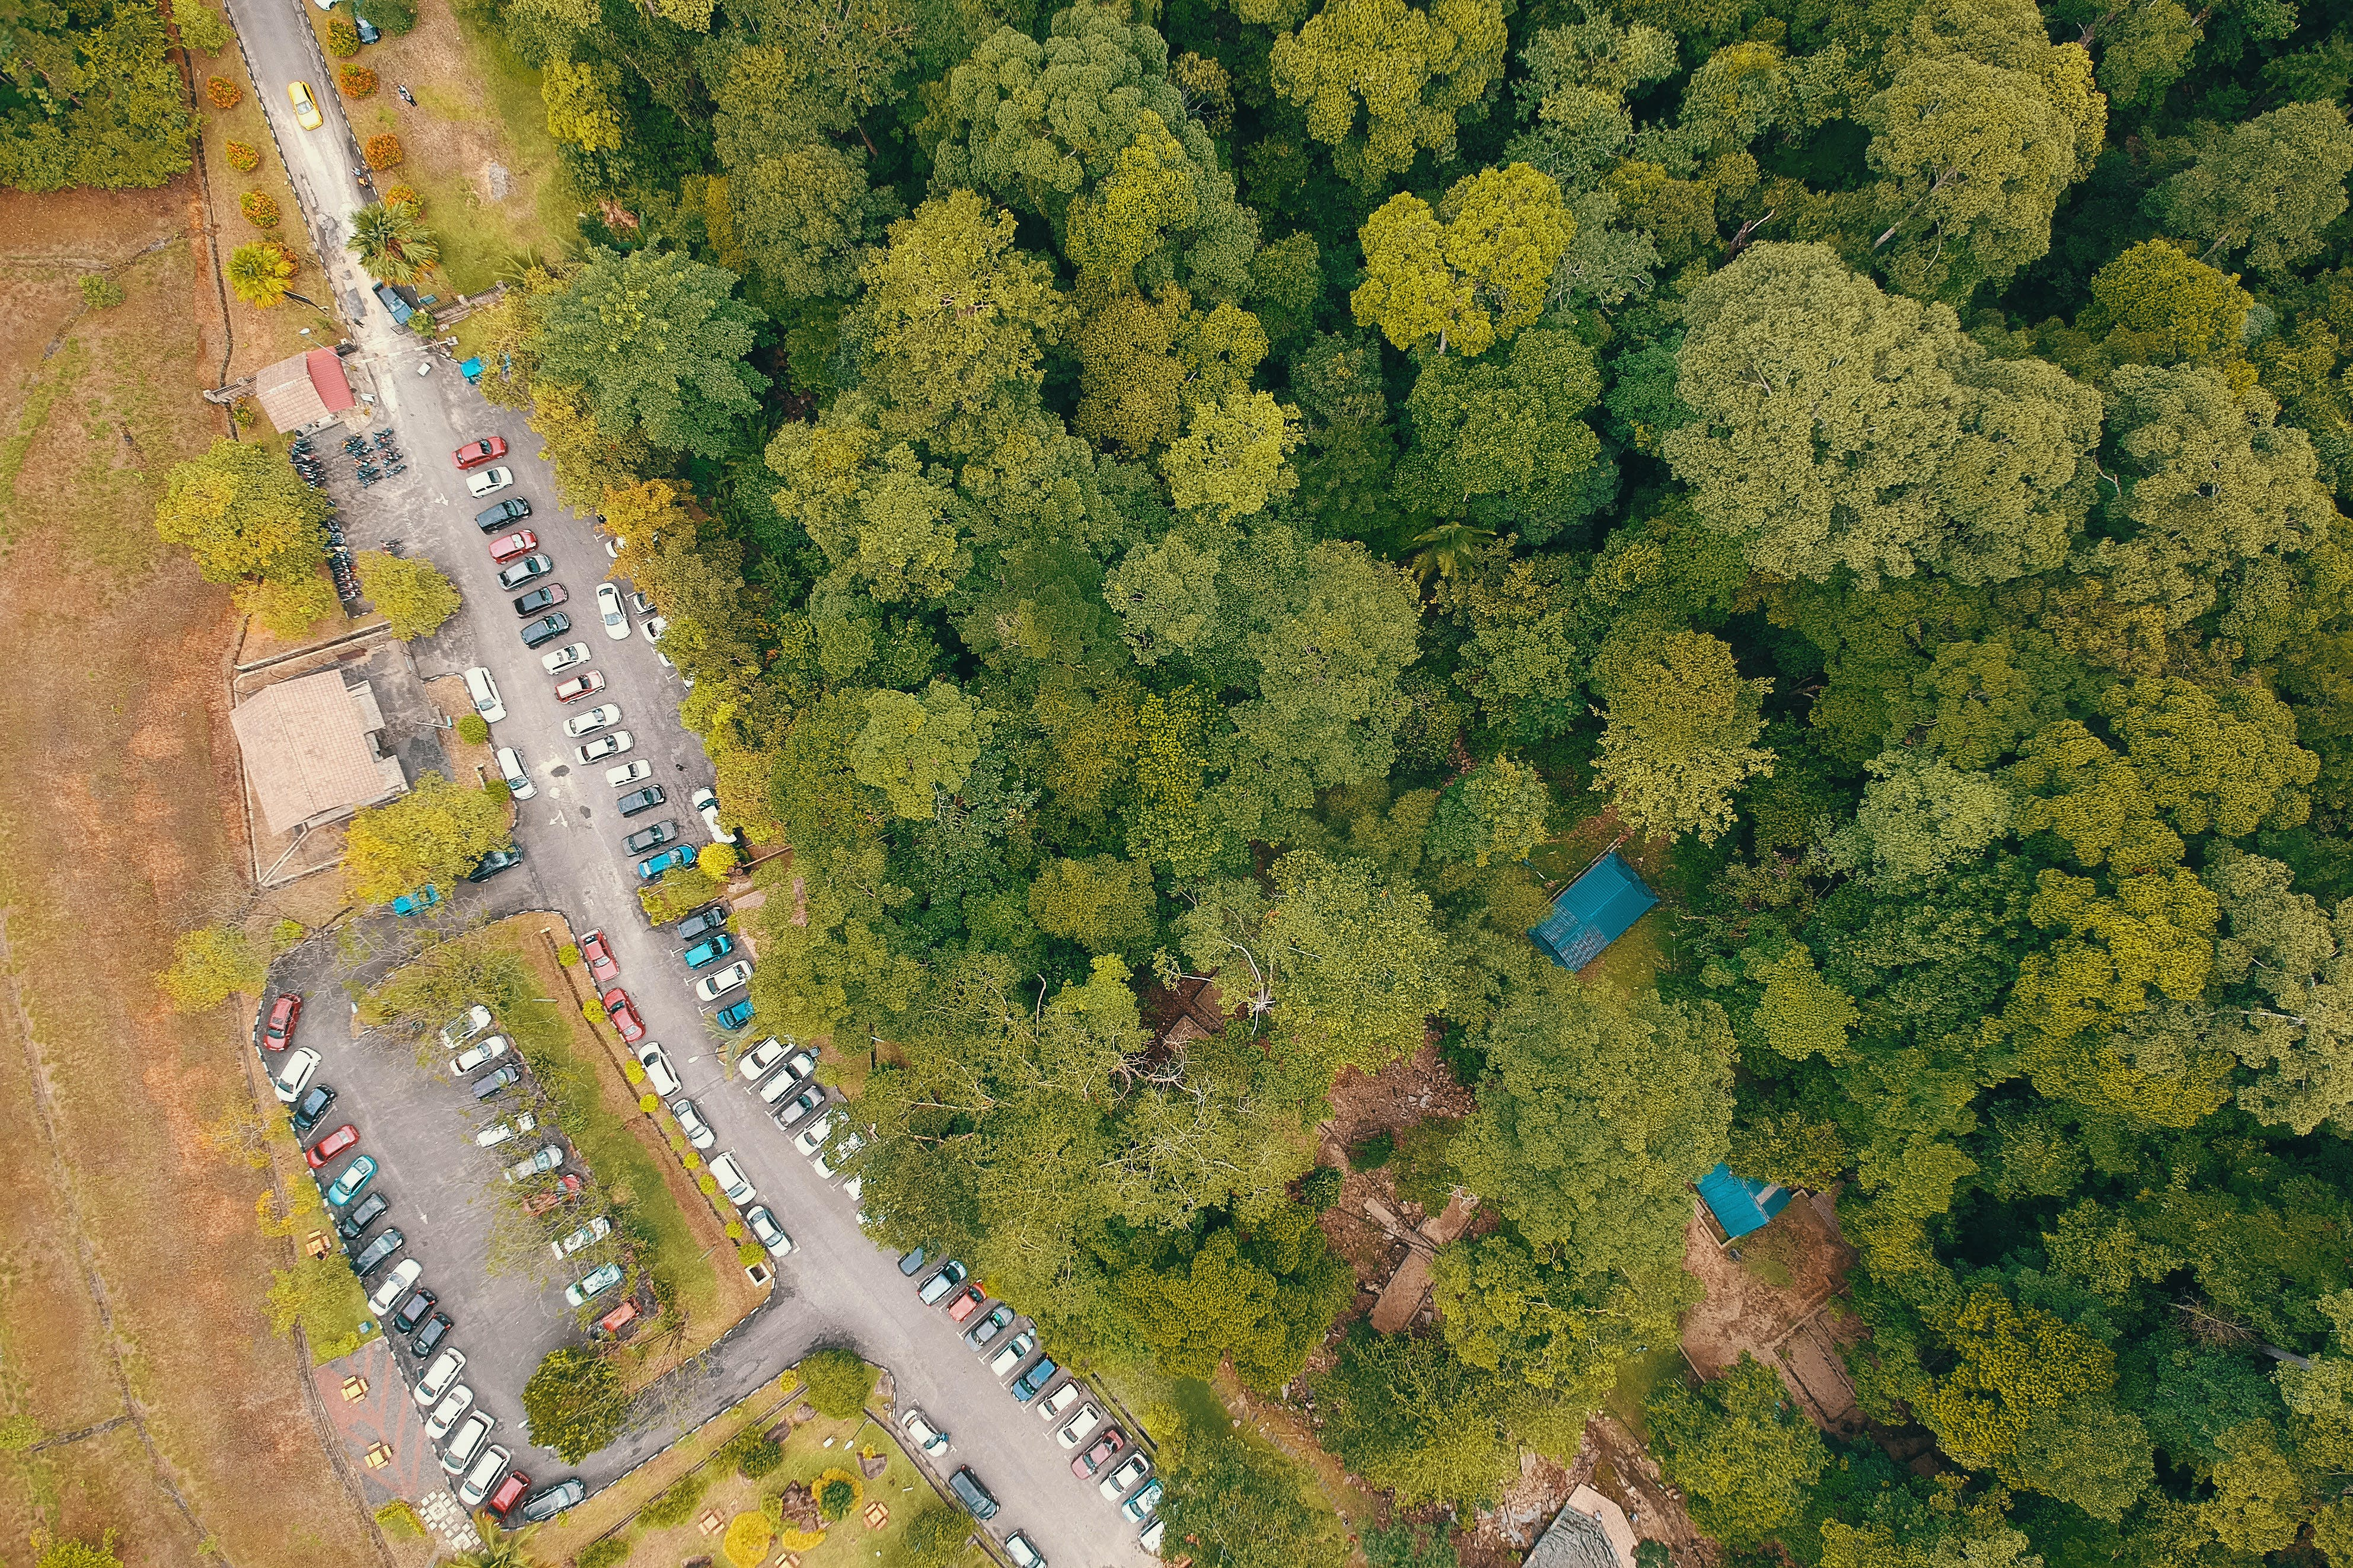 Aerial Photo of Cars Parked Near Forest